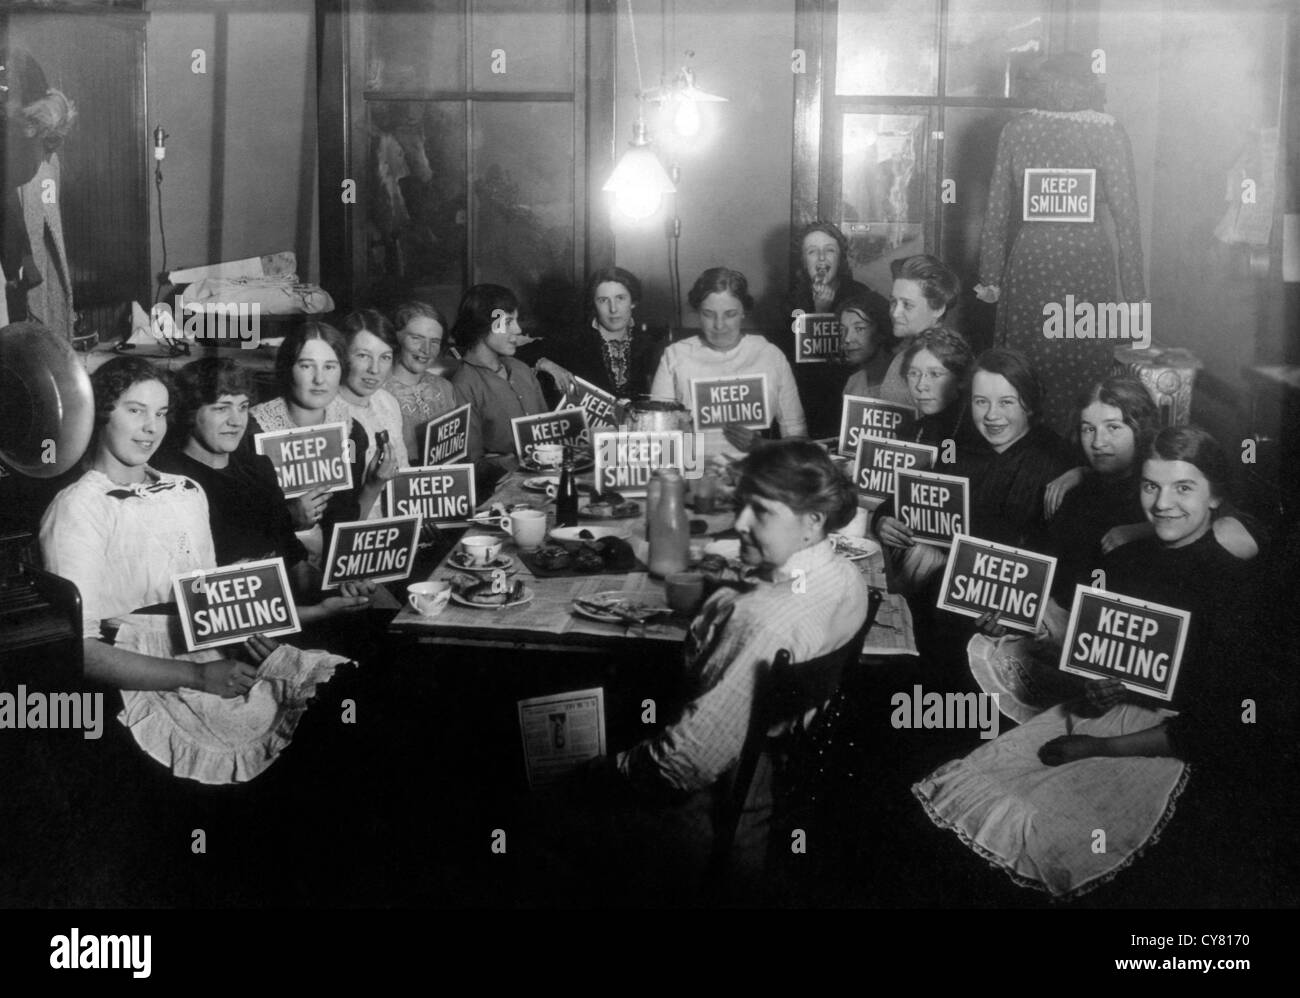 Seamstresses on Lunch Break, Holding Keep Smiling Signs, Circa 1914 Stock Photo